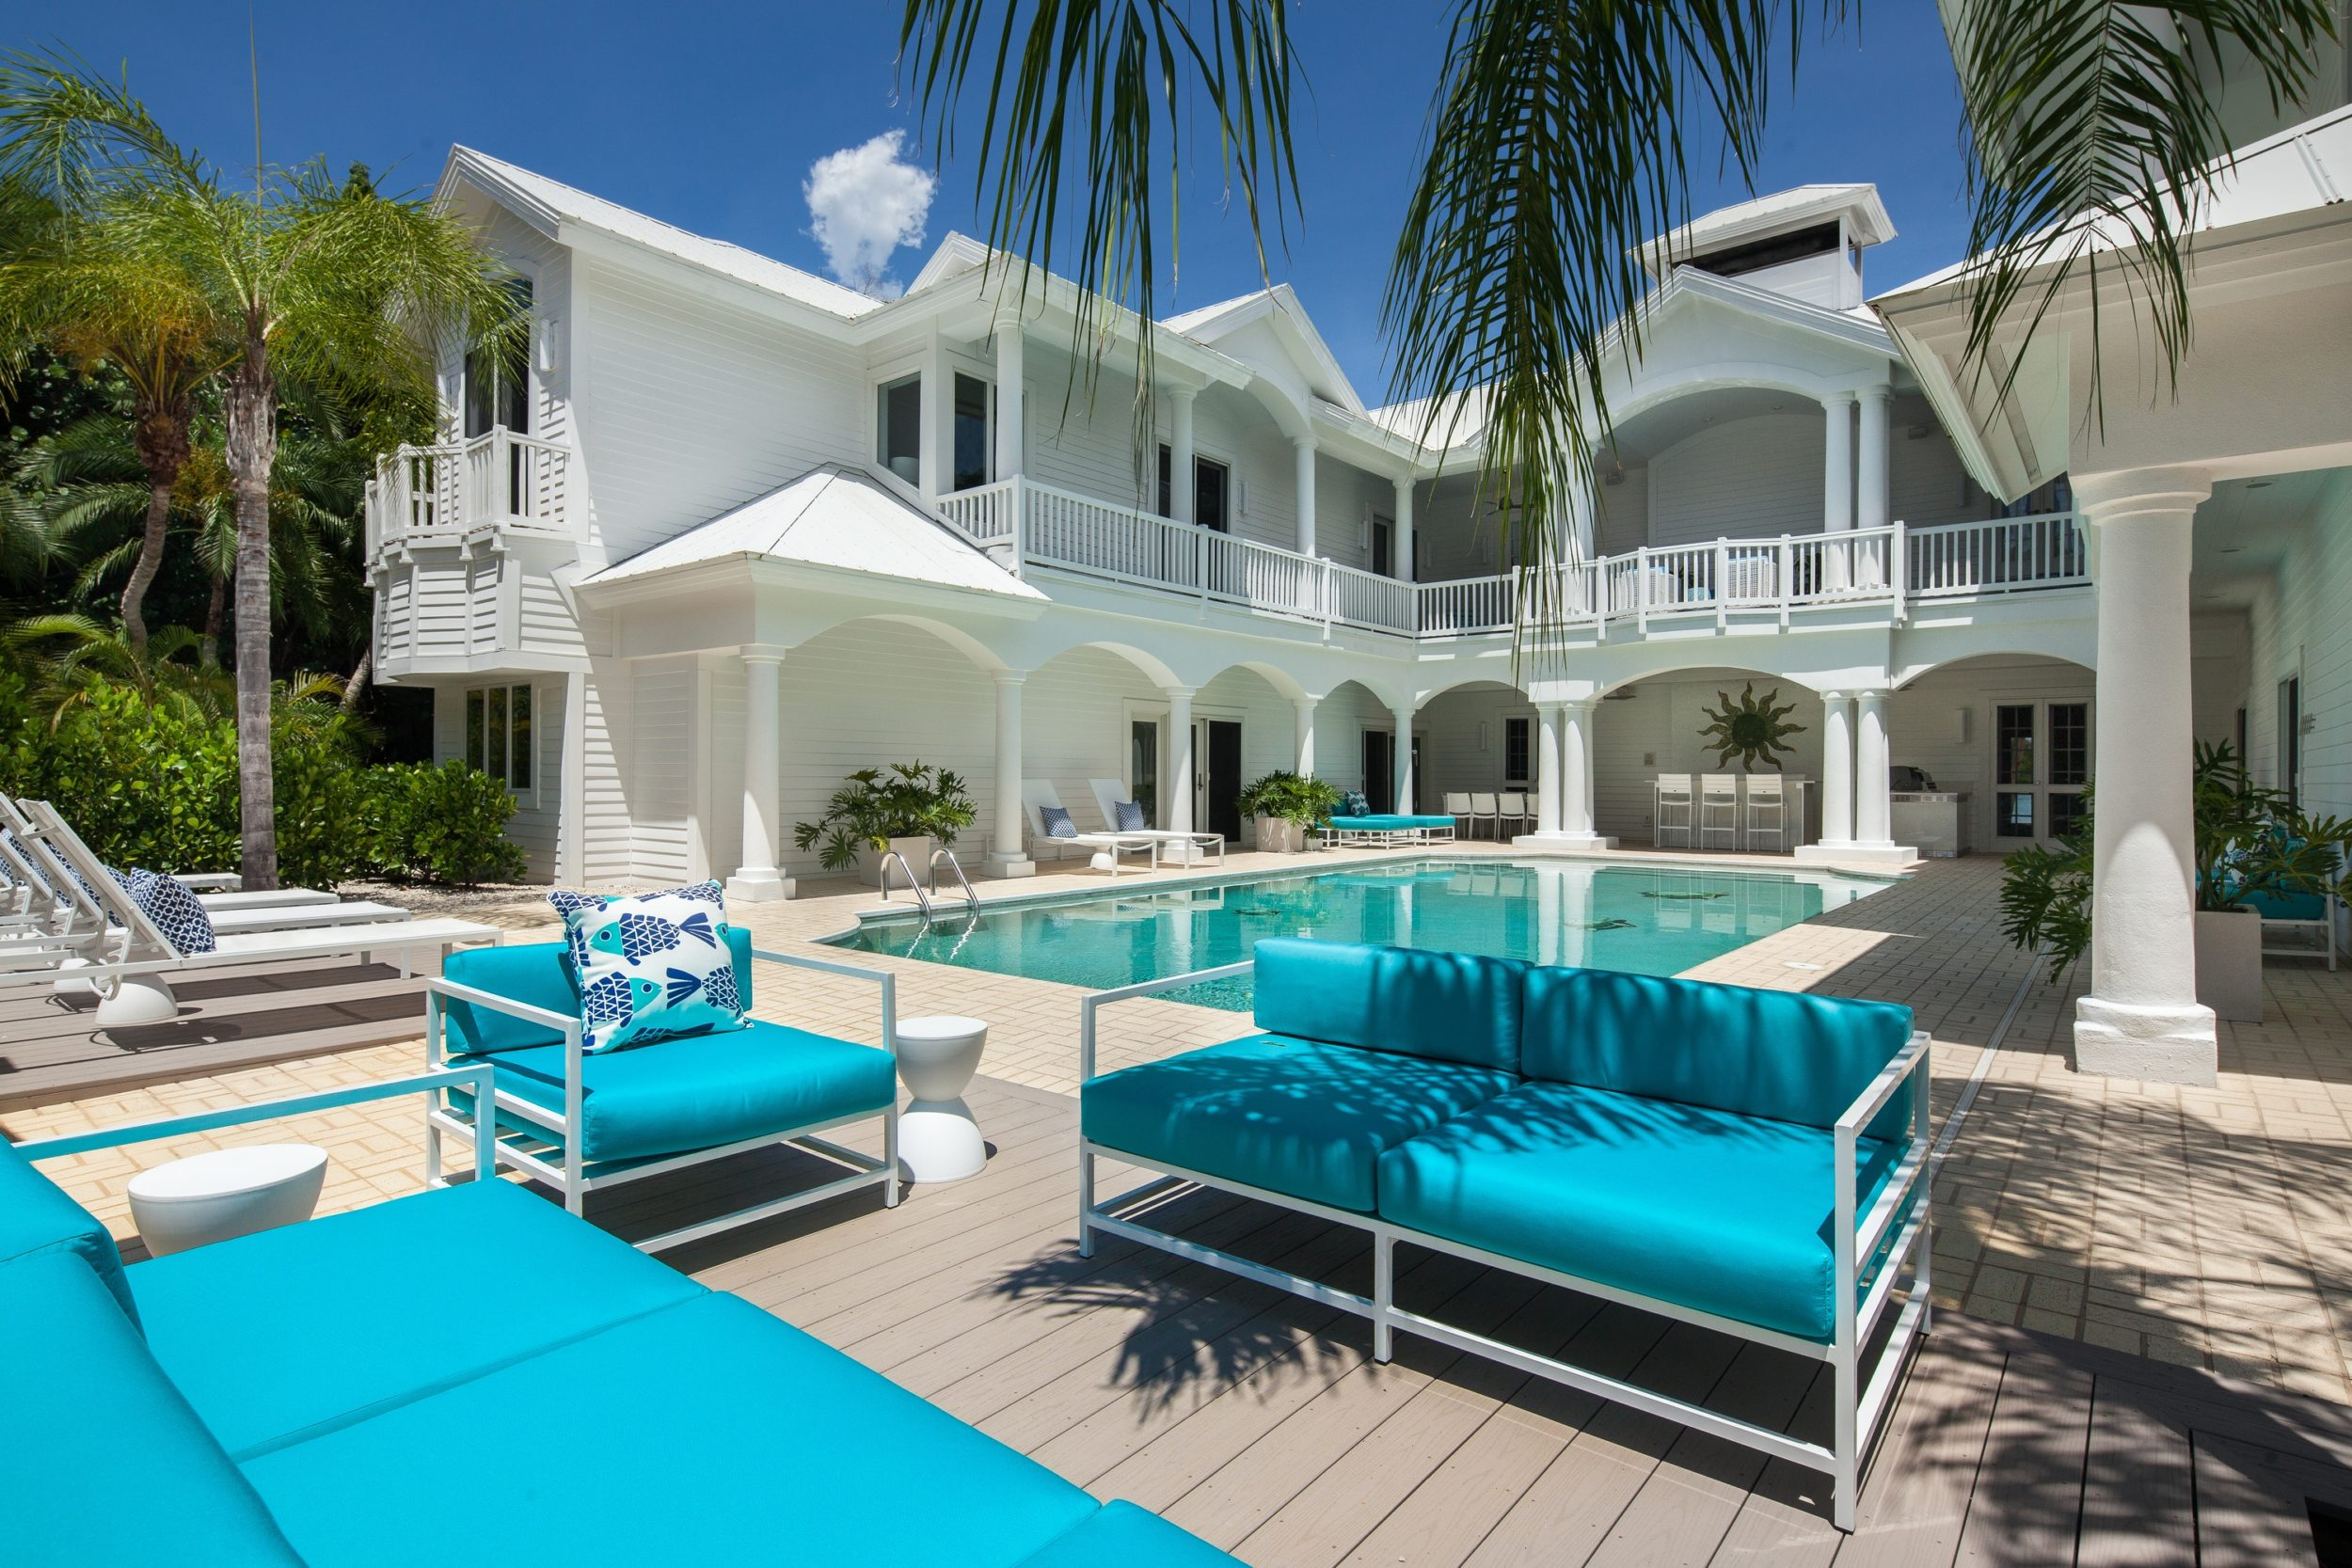 Sea Oats is a gorgeous vacation rental home on Captiva Island